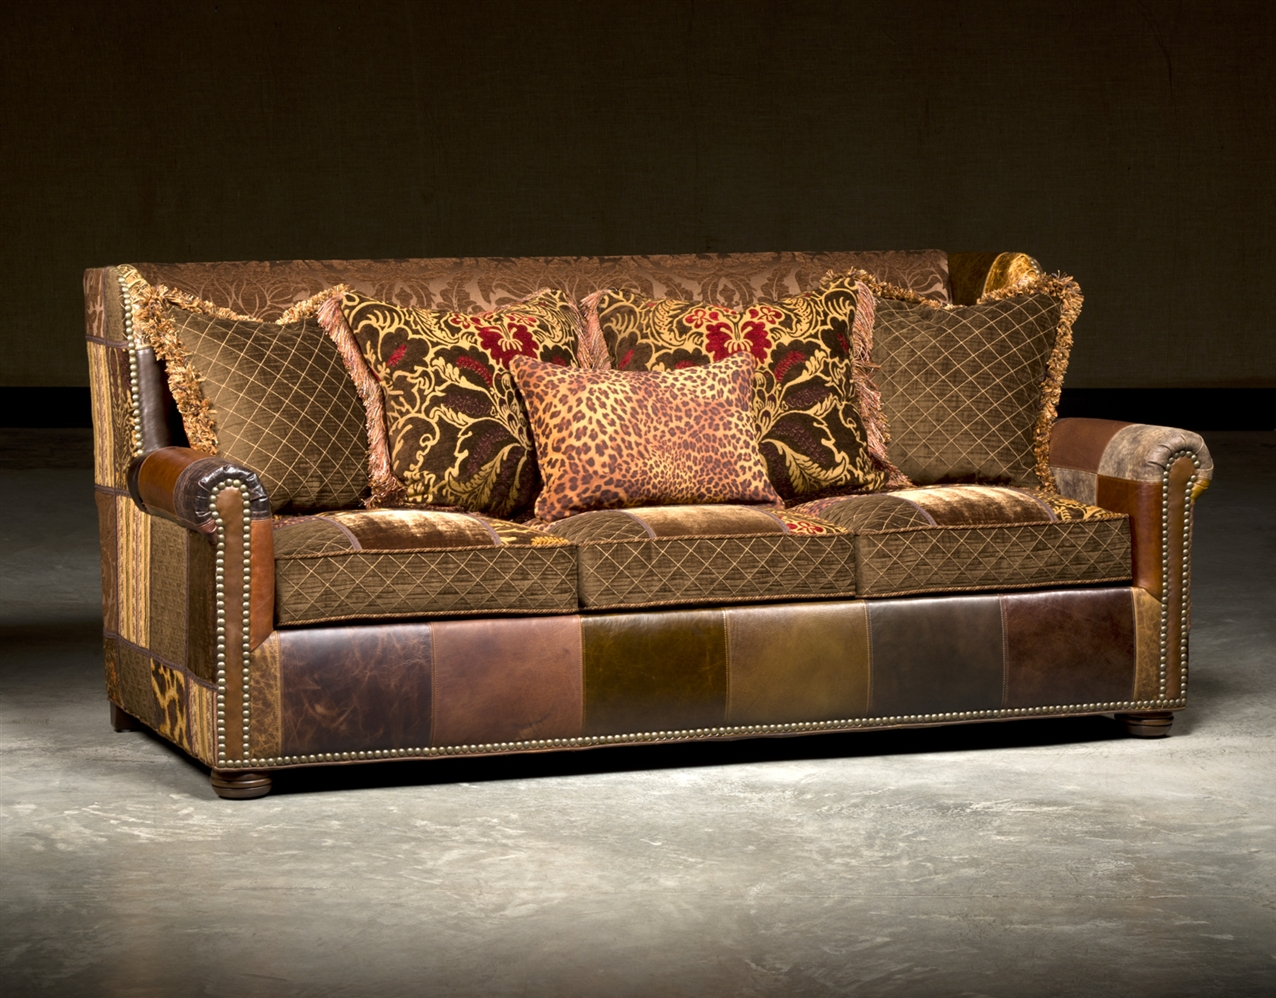 SOFA, COUCH U0026 LOVESEAT Leather Sofa In Patches, High End Furnishings